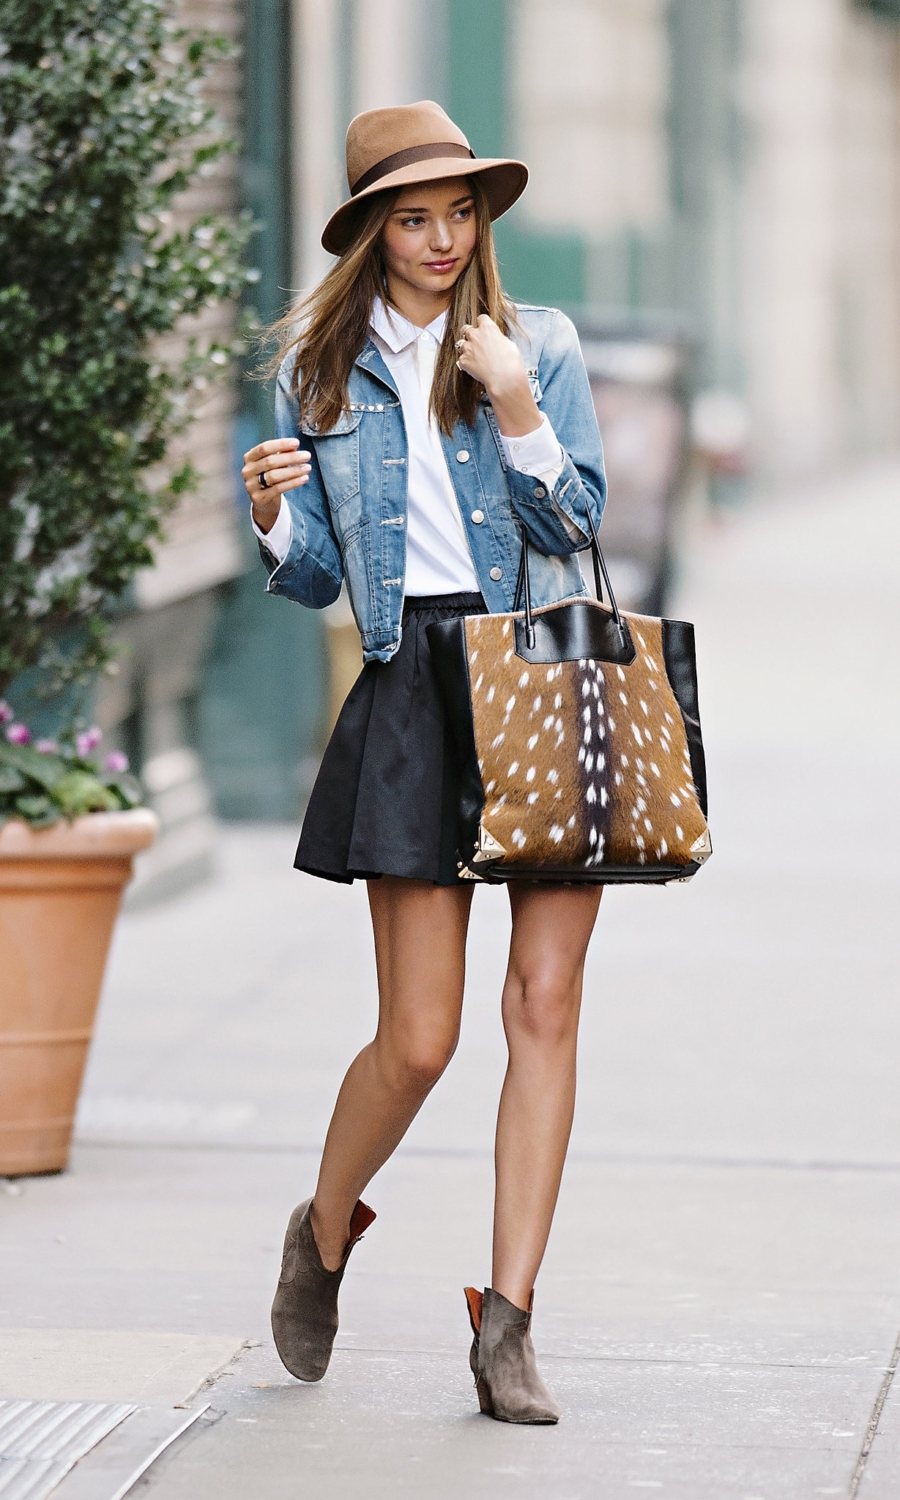 Denim Jackets and Ankle Booties - Ultra Chic On-The-Go Styles For Every Girl // NotJessFashion.com